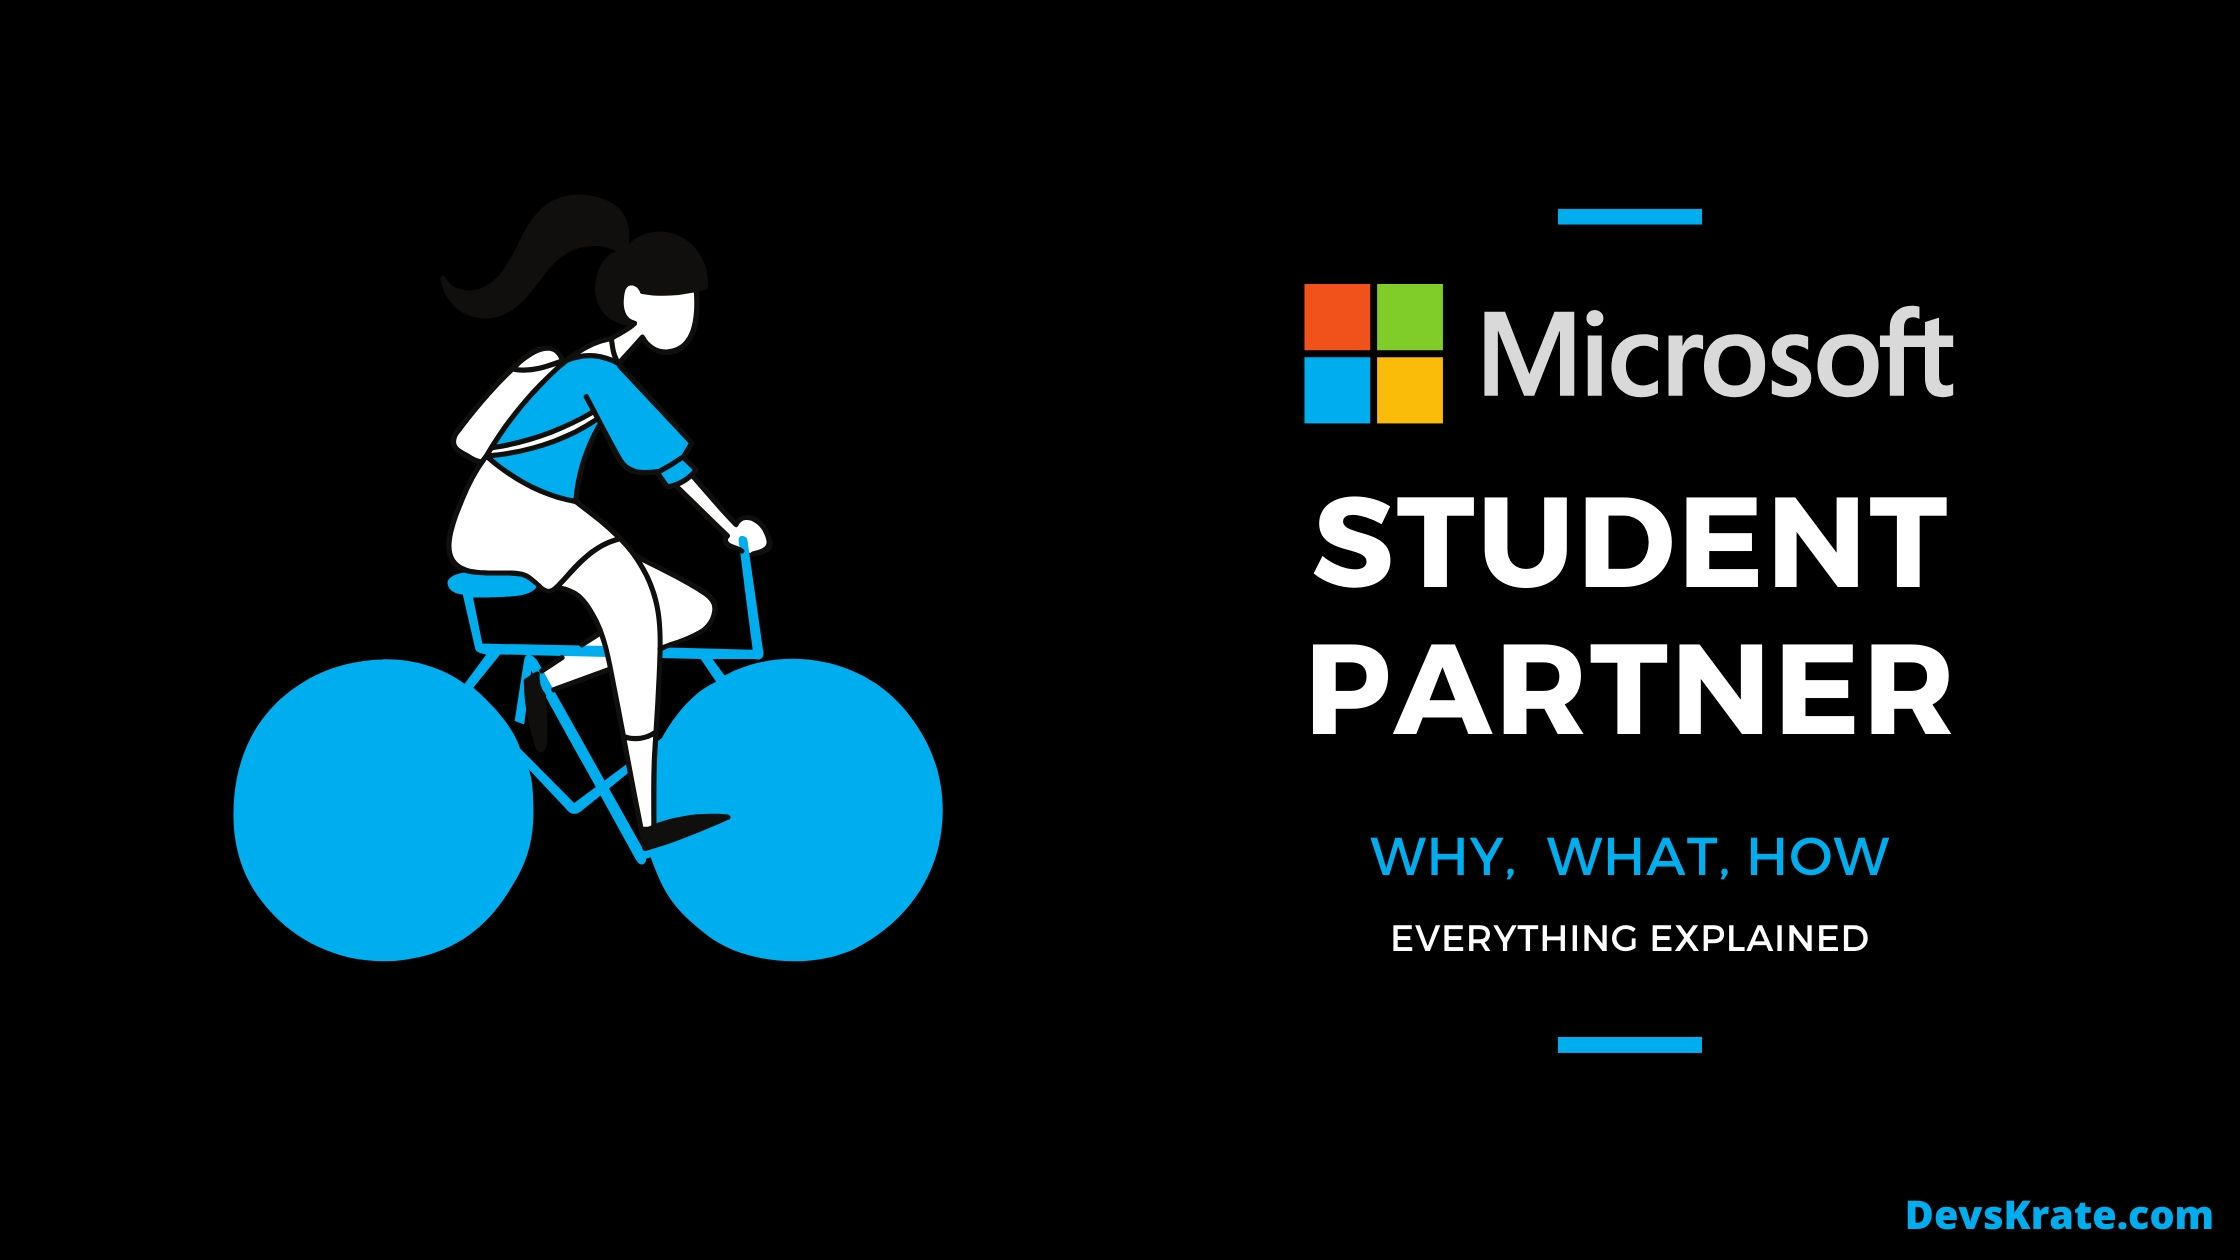 What is Microsoft Student Partner?